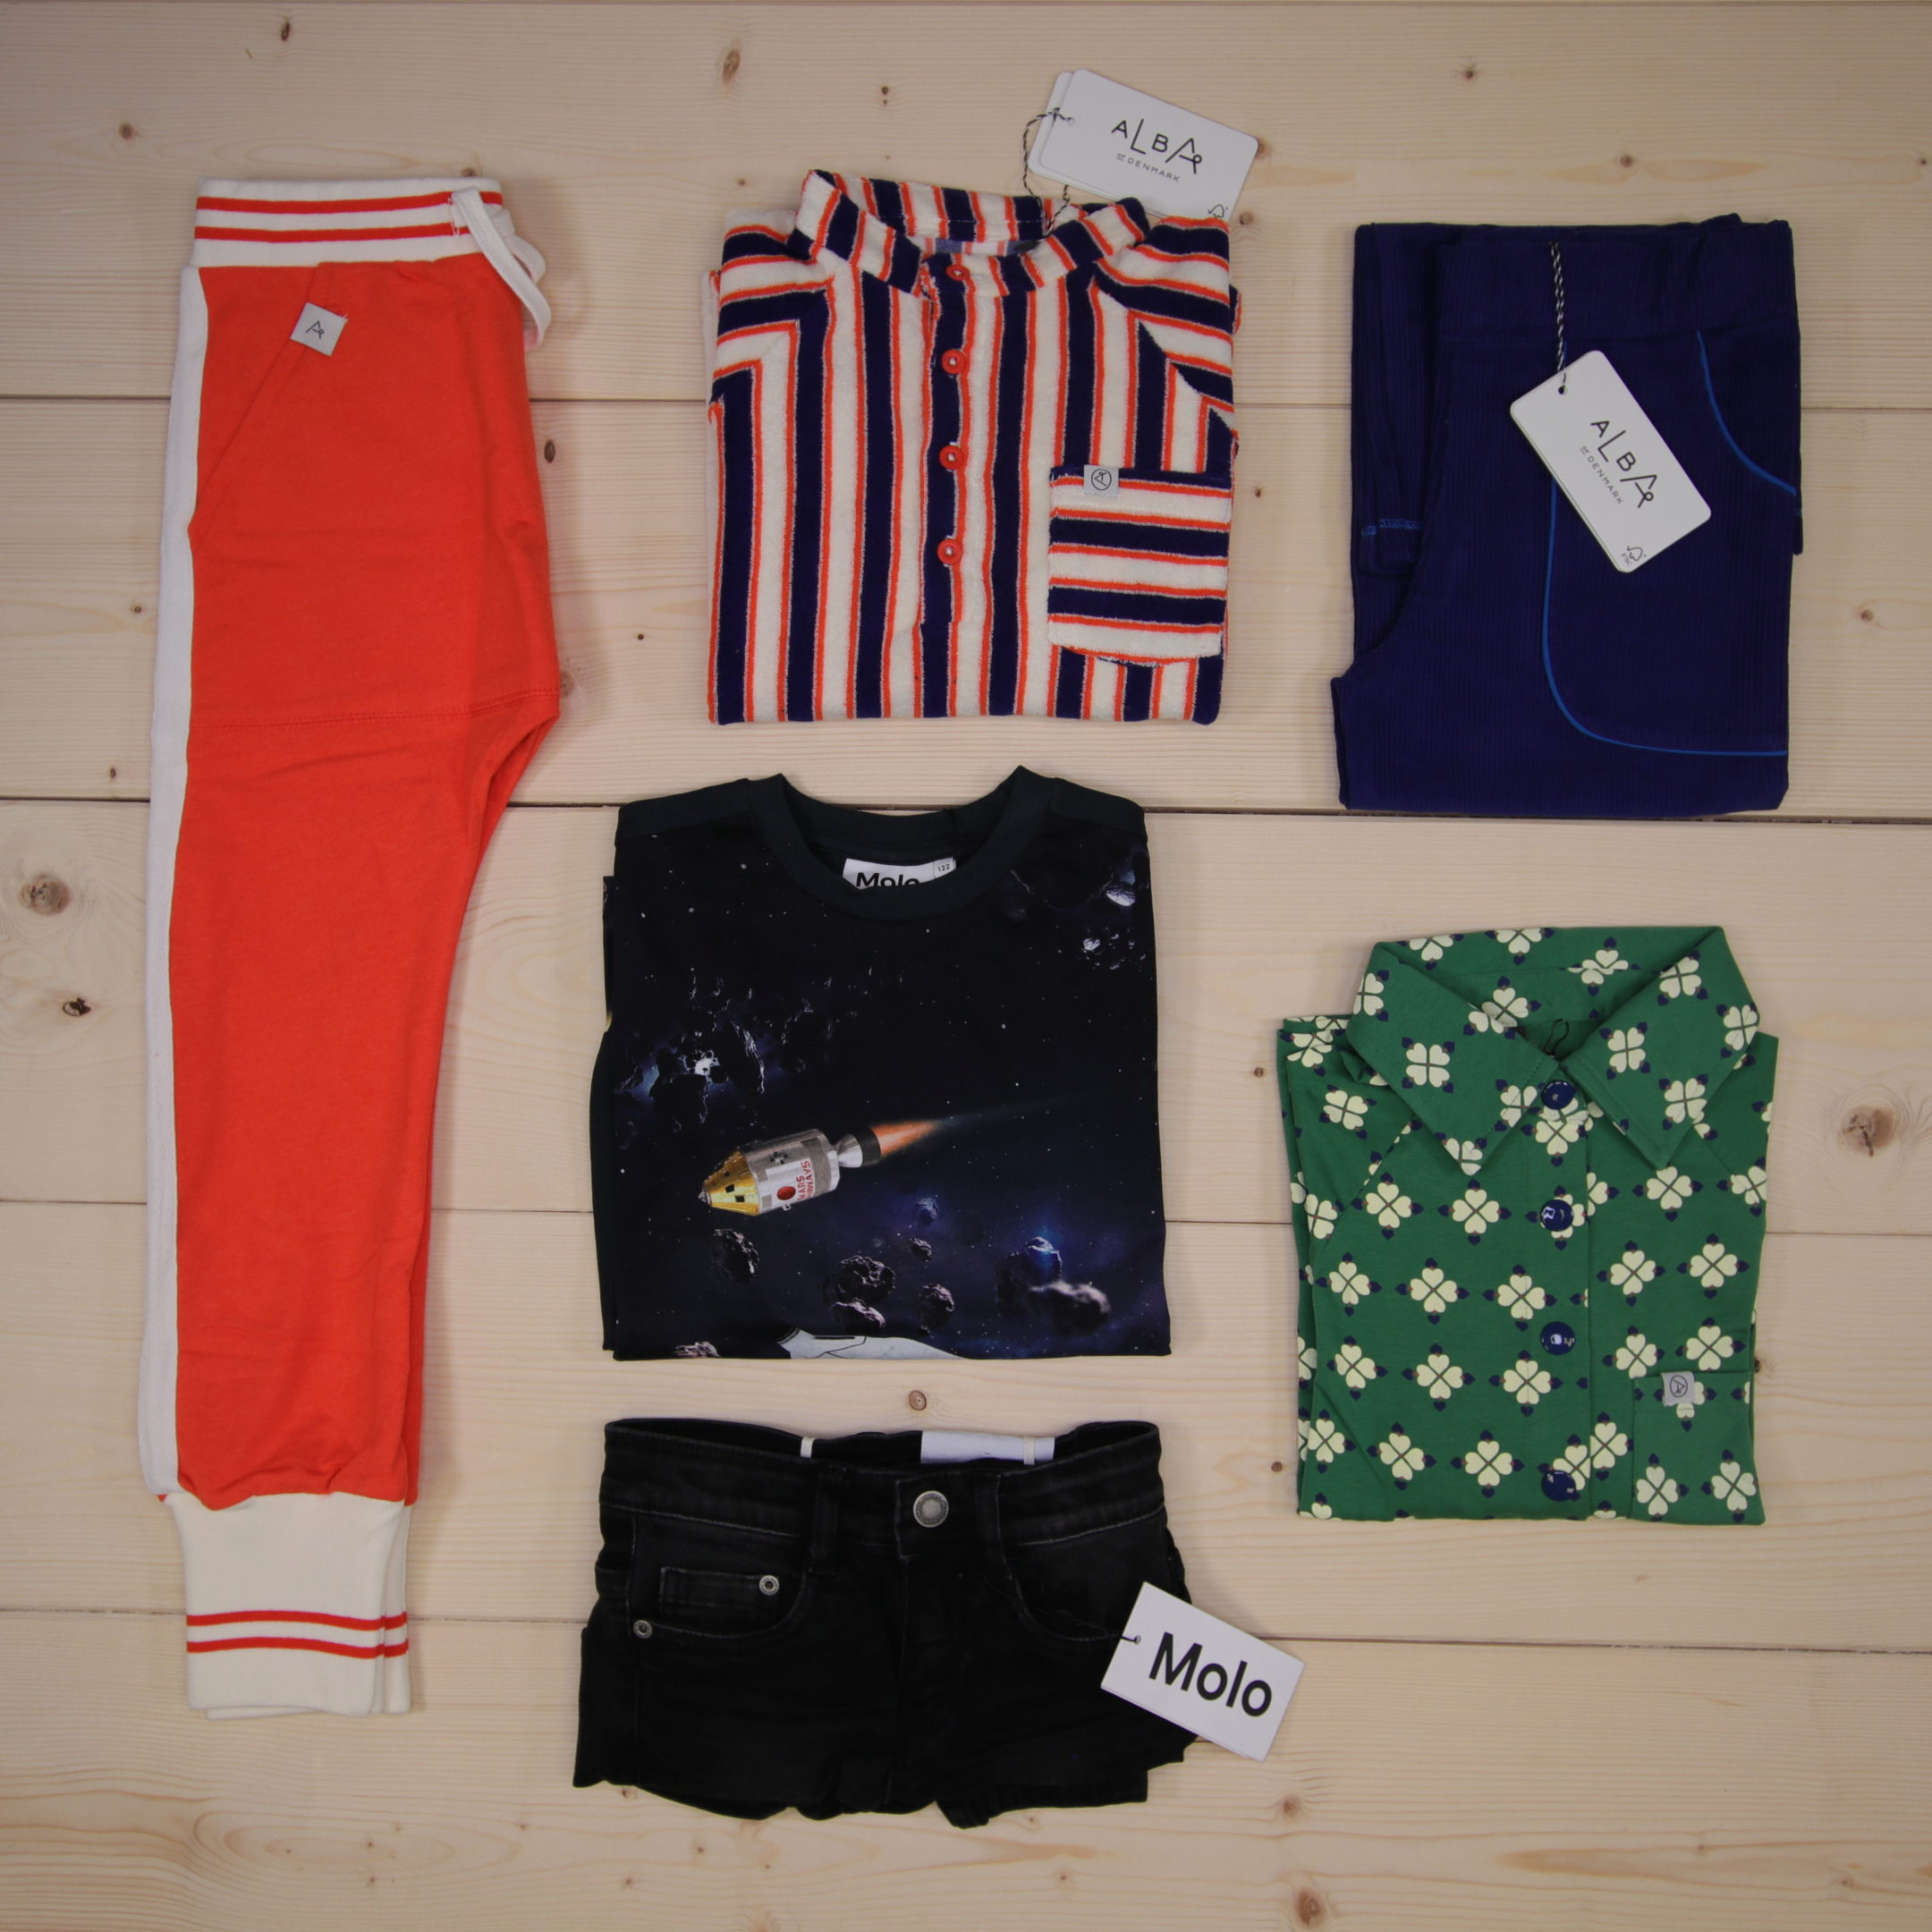 This is Småkassen that we prepared for a boy in the styles cool and colorful in size 122.